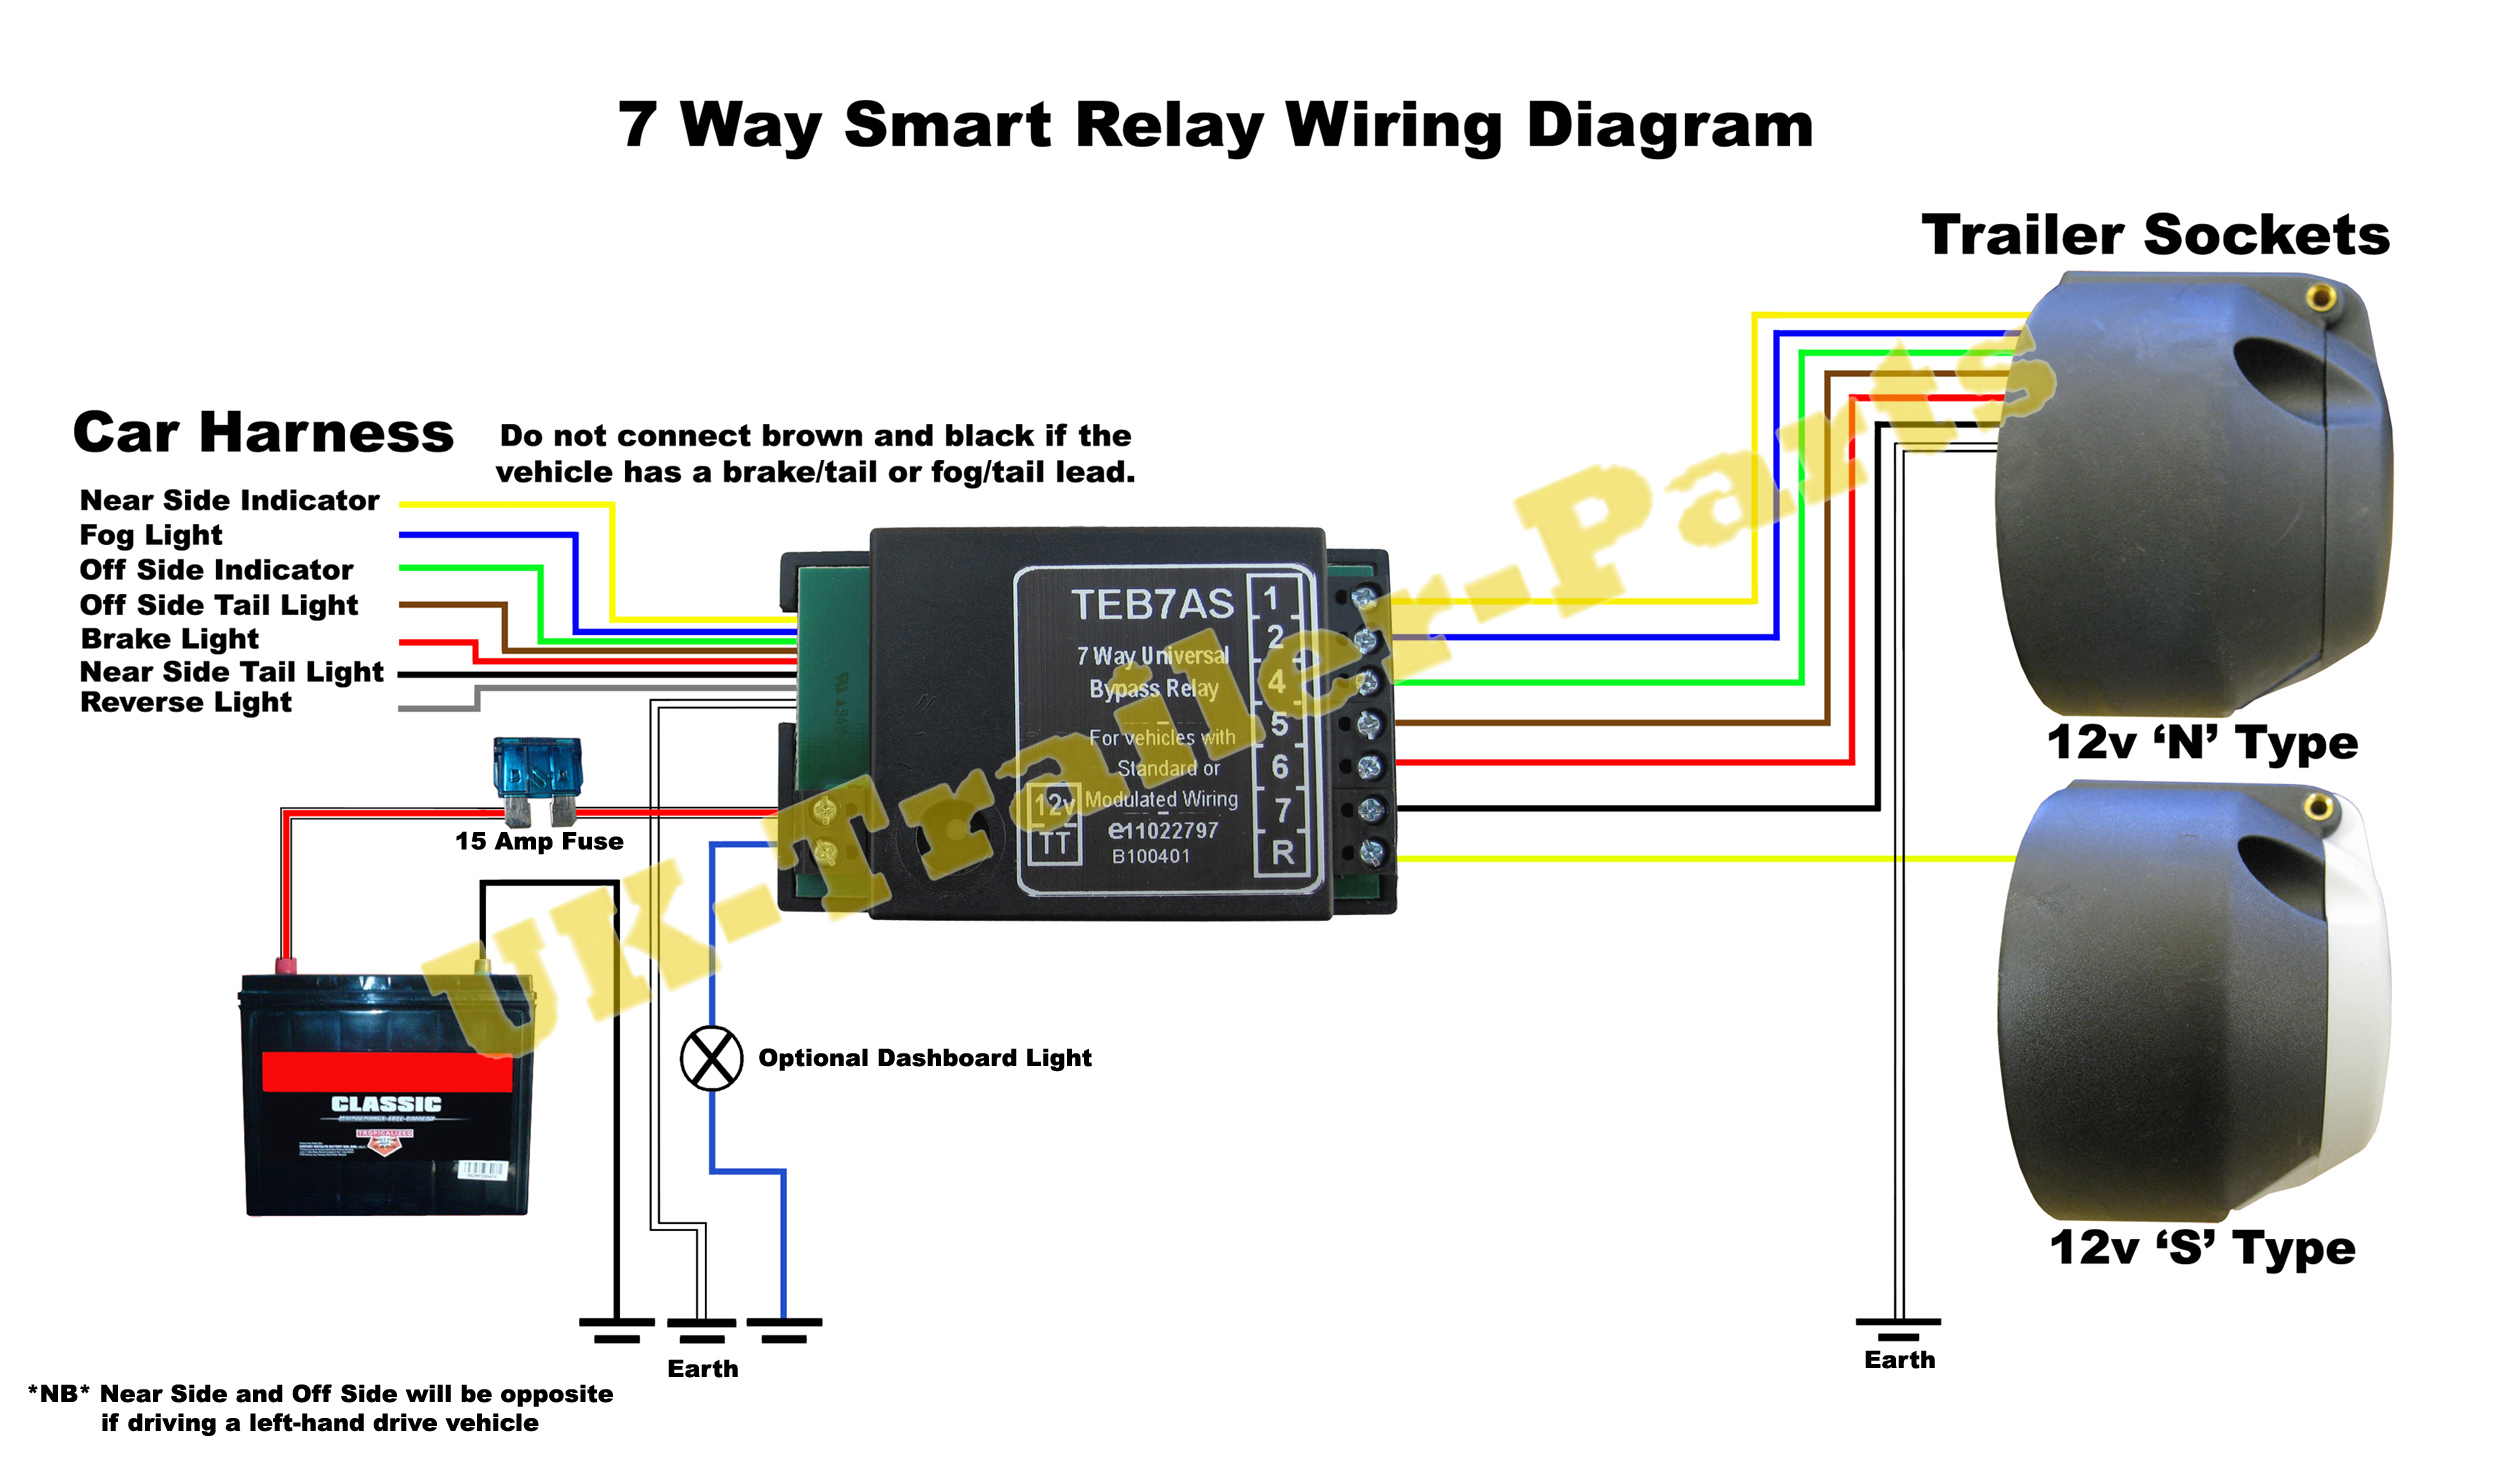 7 way universal bypass relay wiring diagram uk trailer parts rh uk trailer parts co uk idec smart relay wiring diagram redarc smart relay wiring diagram